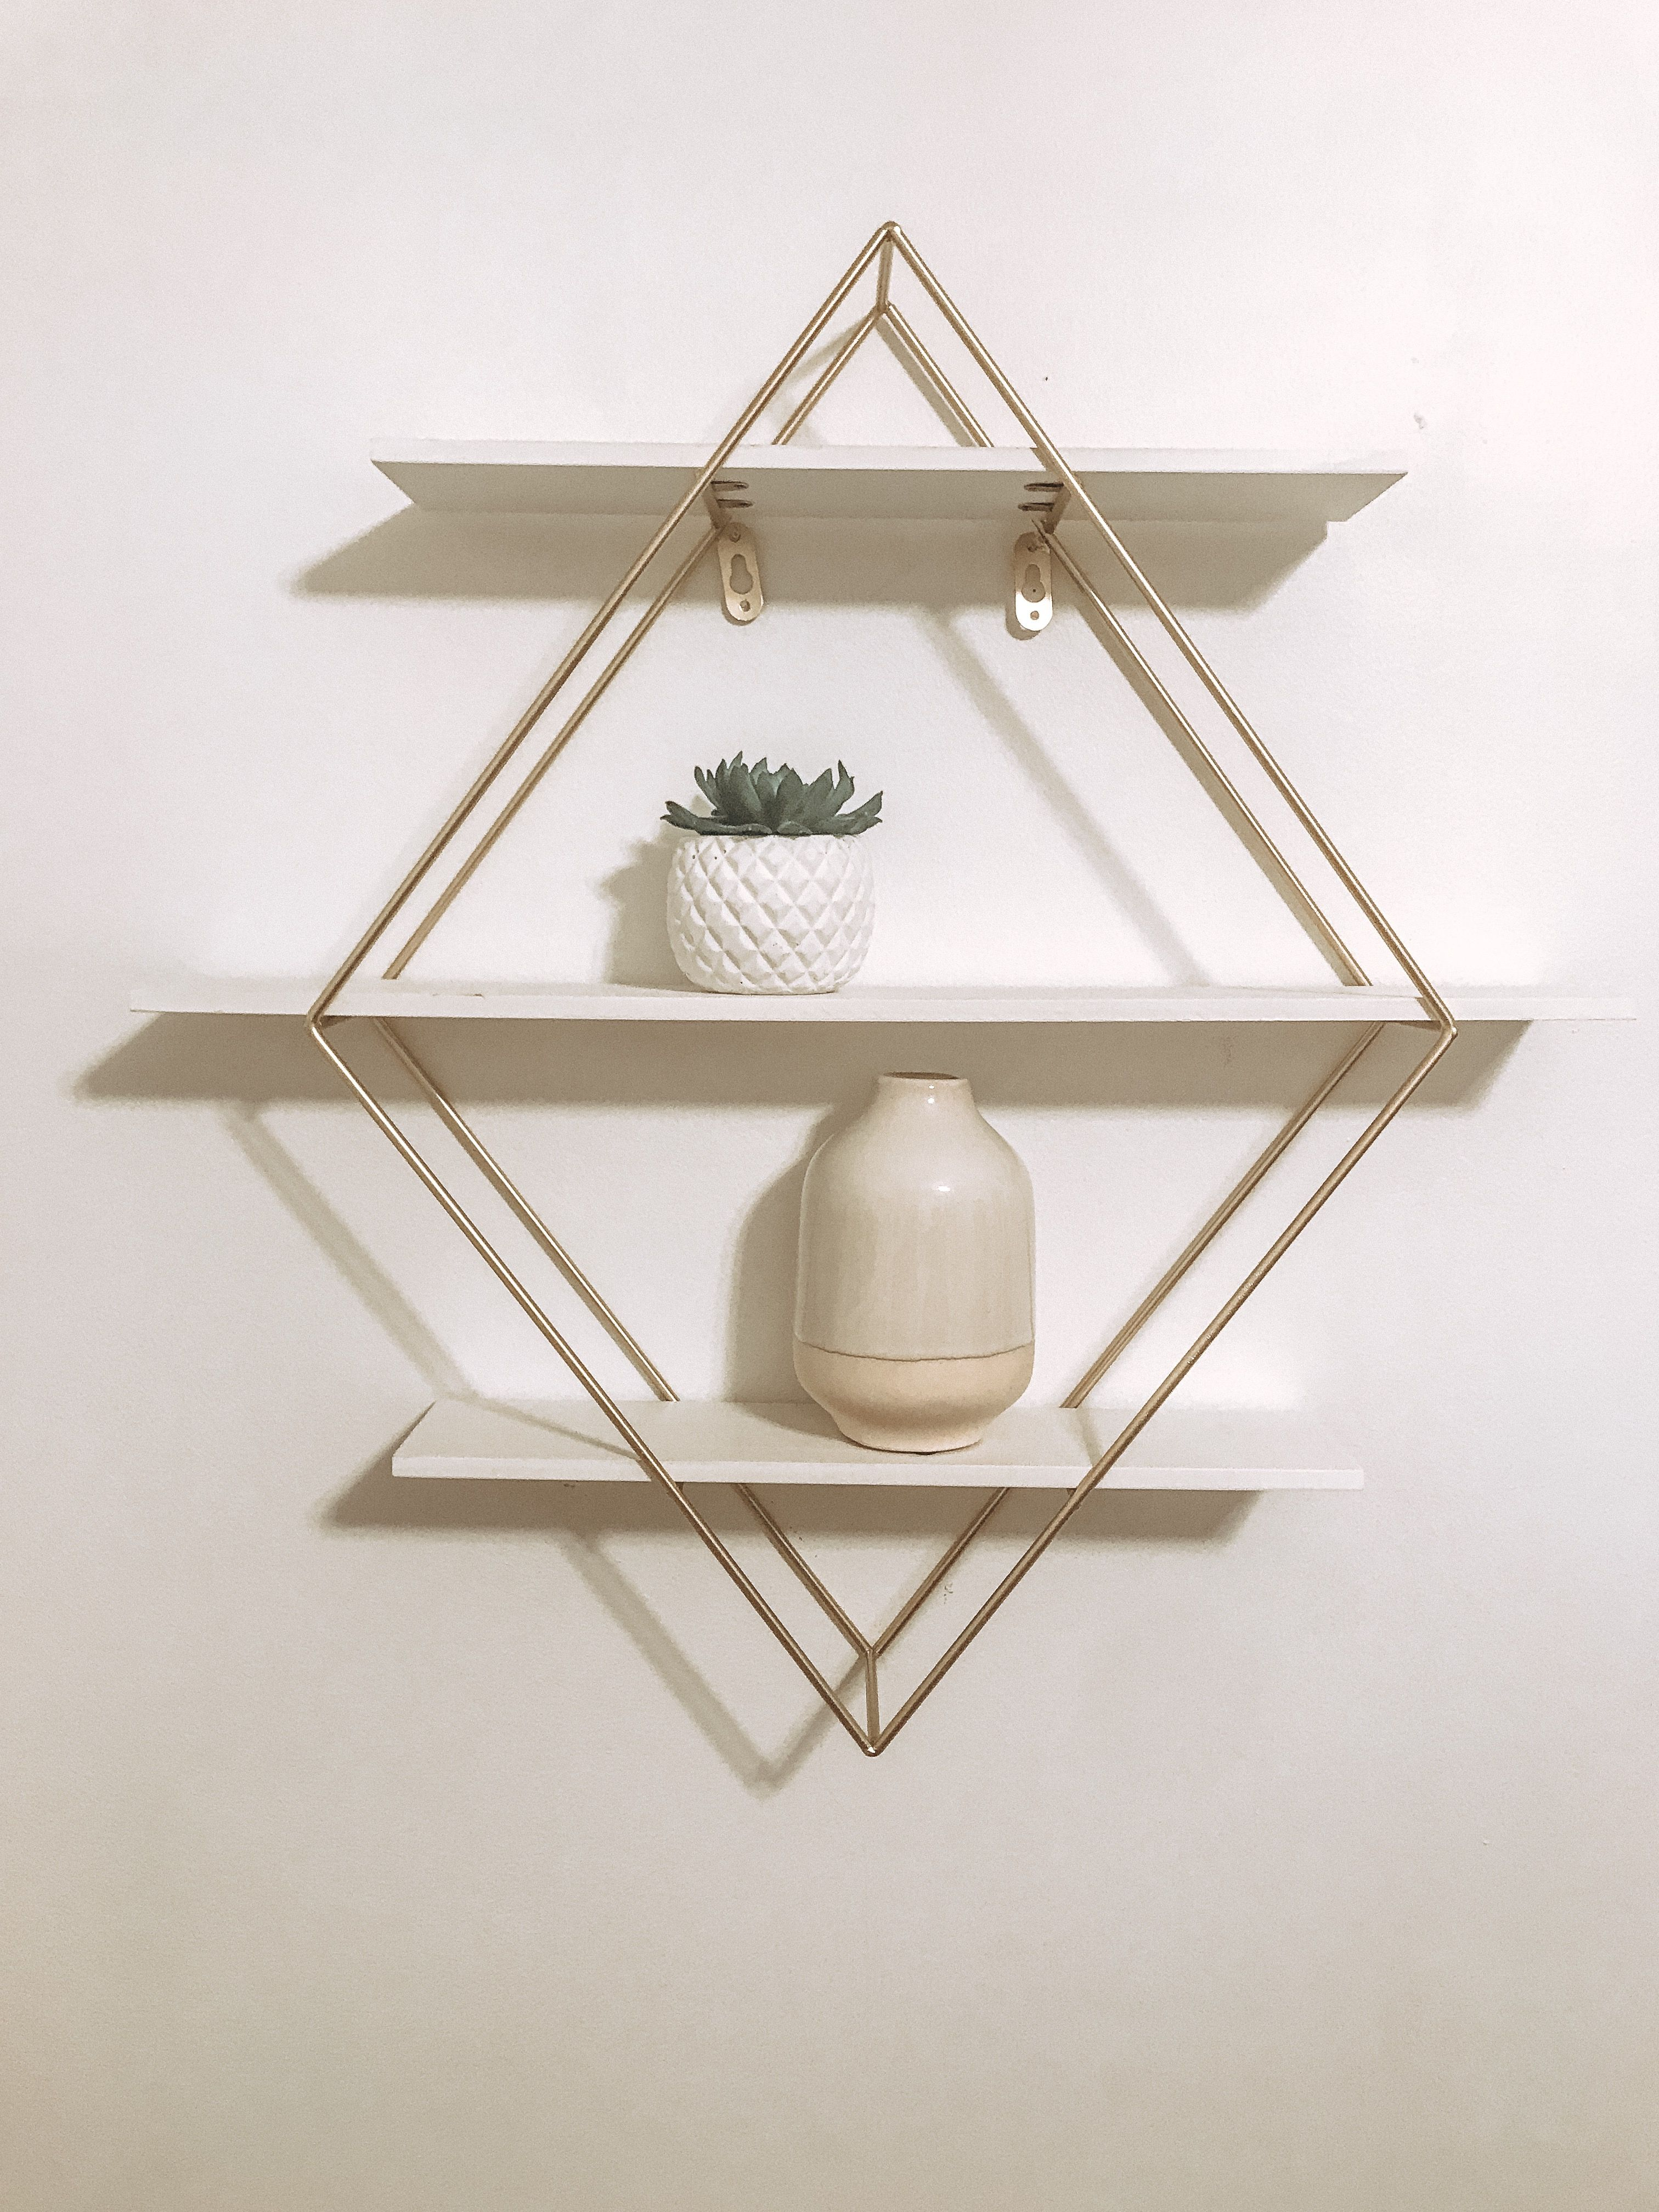 451fc18bb50 TJ Maxx triangular white and gold shelf! Succulent and vase purchased at TJ  Maxx as well! Super cute decor to fill spaces on walls!